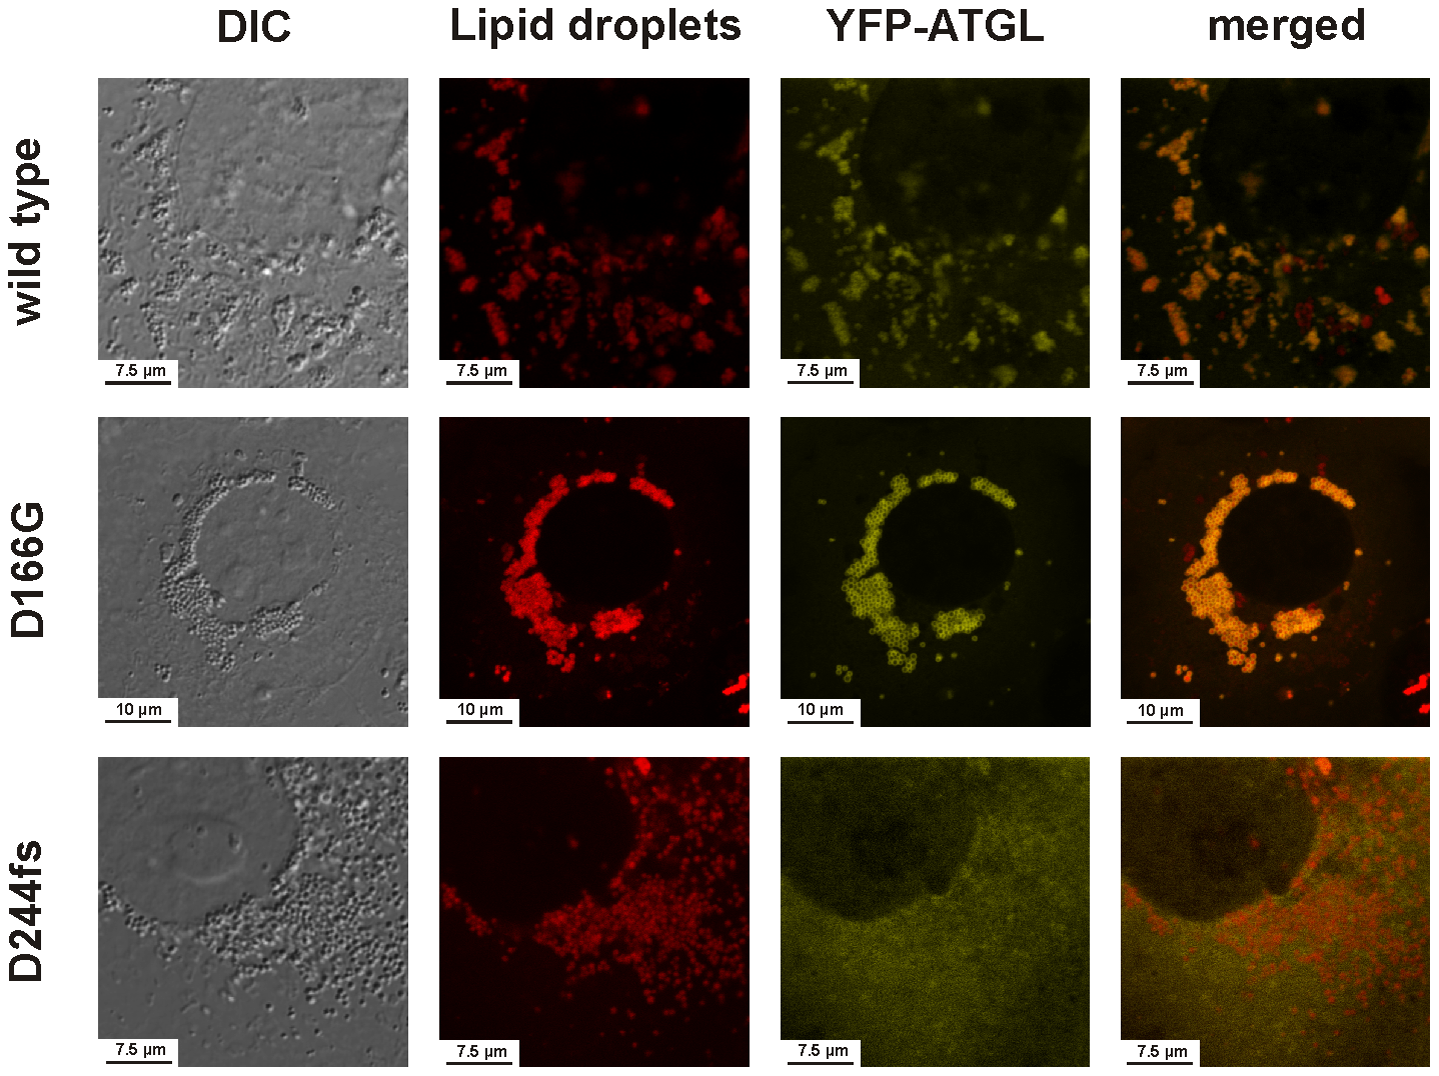 Intracellular localization of the wild-type ATGL protein and the mutants D166G and D244fs as determined by laser scanning microscopy.